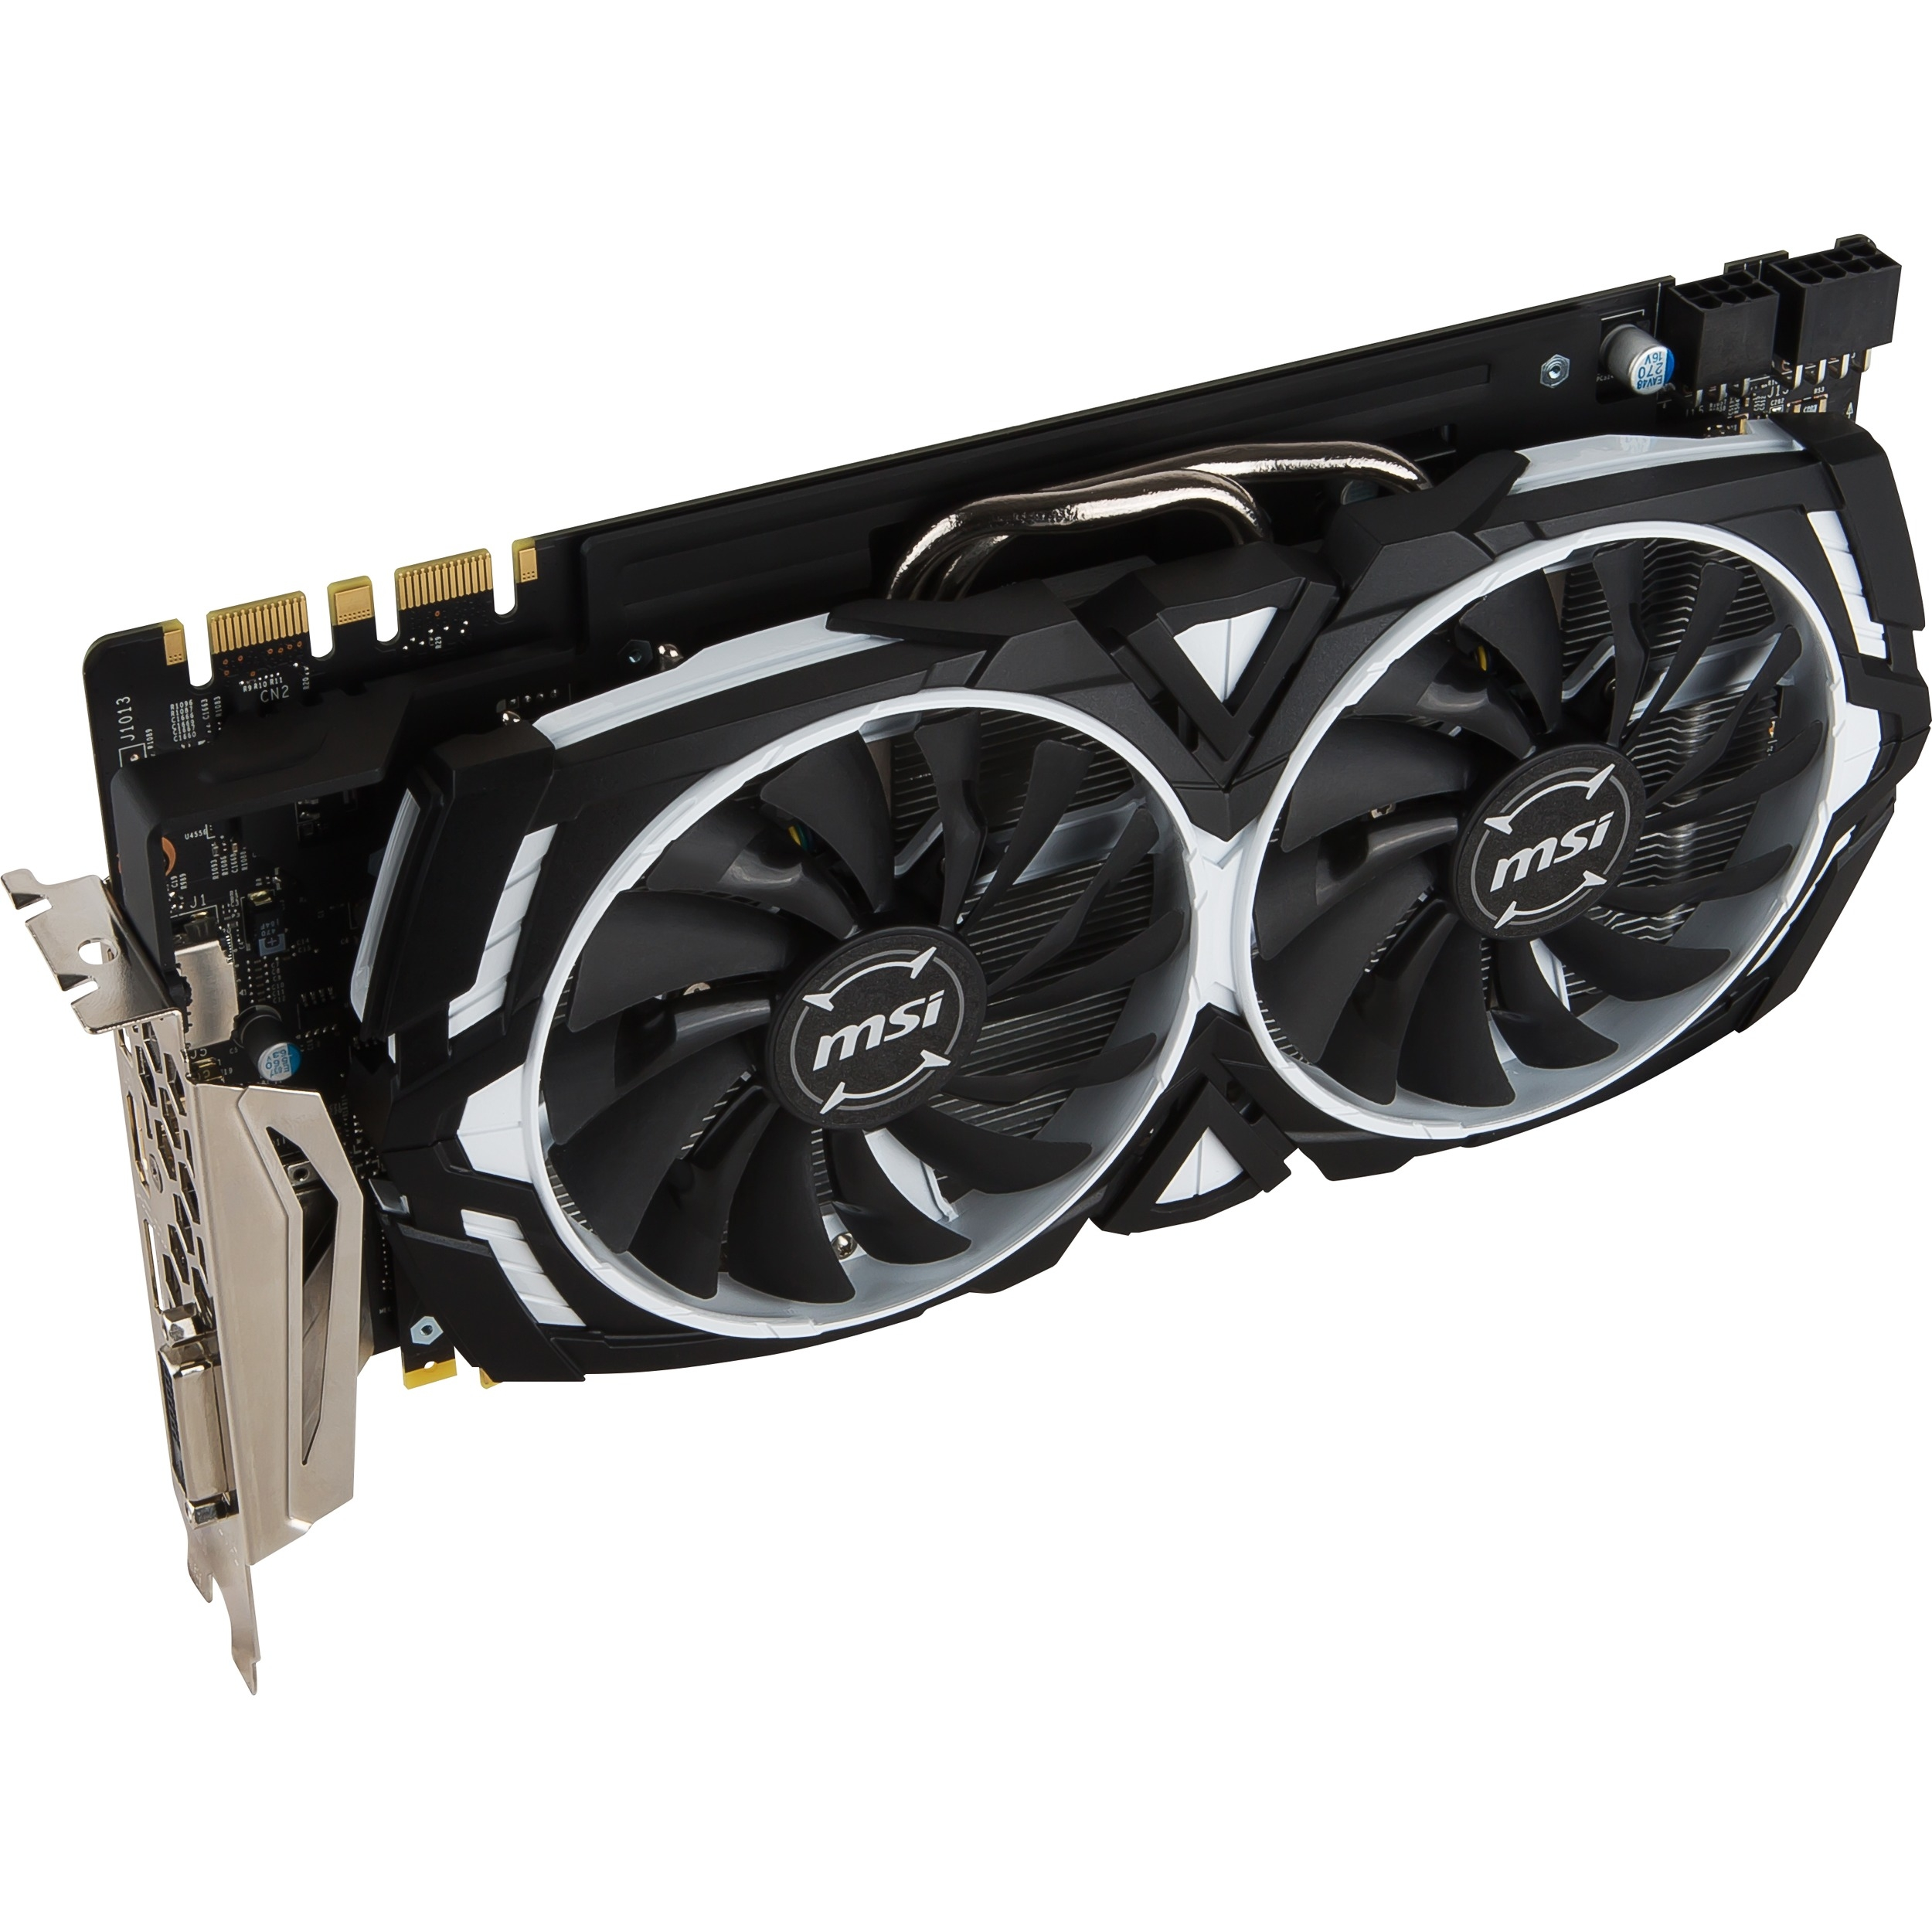 MSI GeForce GTX 1080 Armor 8GB GDDR5X PCI Express 3.0 Graphics Card